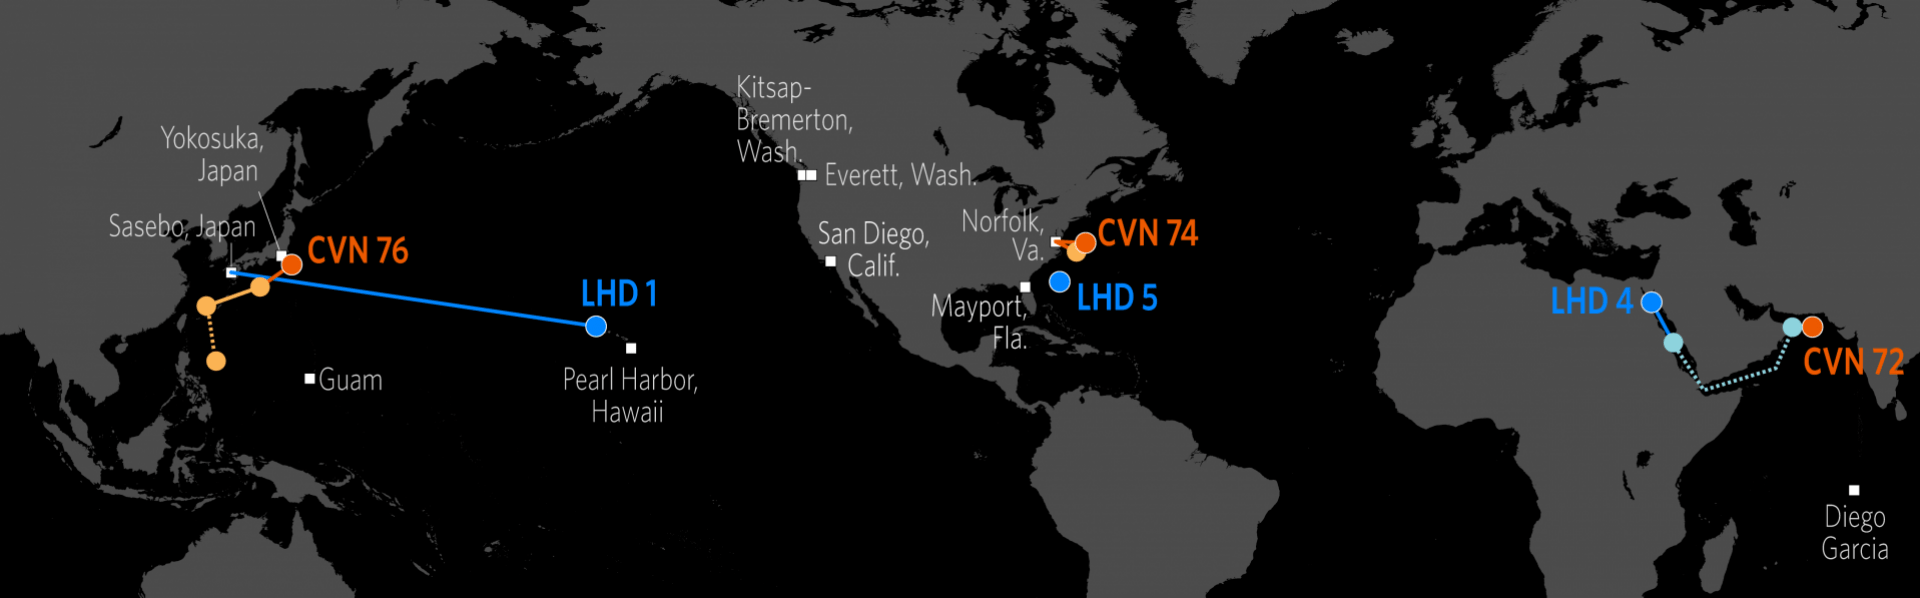 Us Navy Ship Locations Current Map U.S. Naval Update Map: Sept. 5, 2019